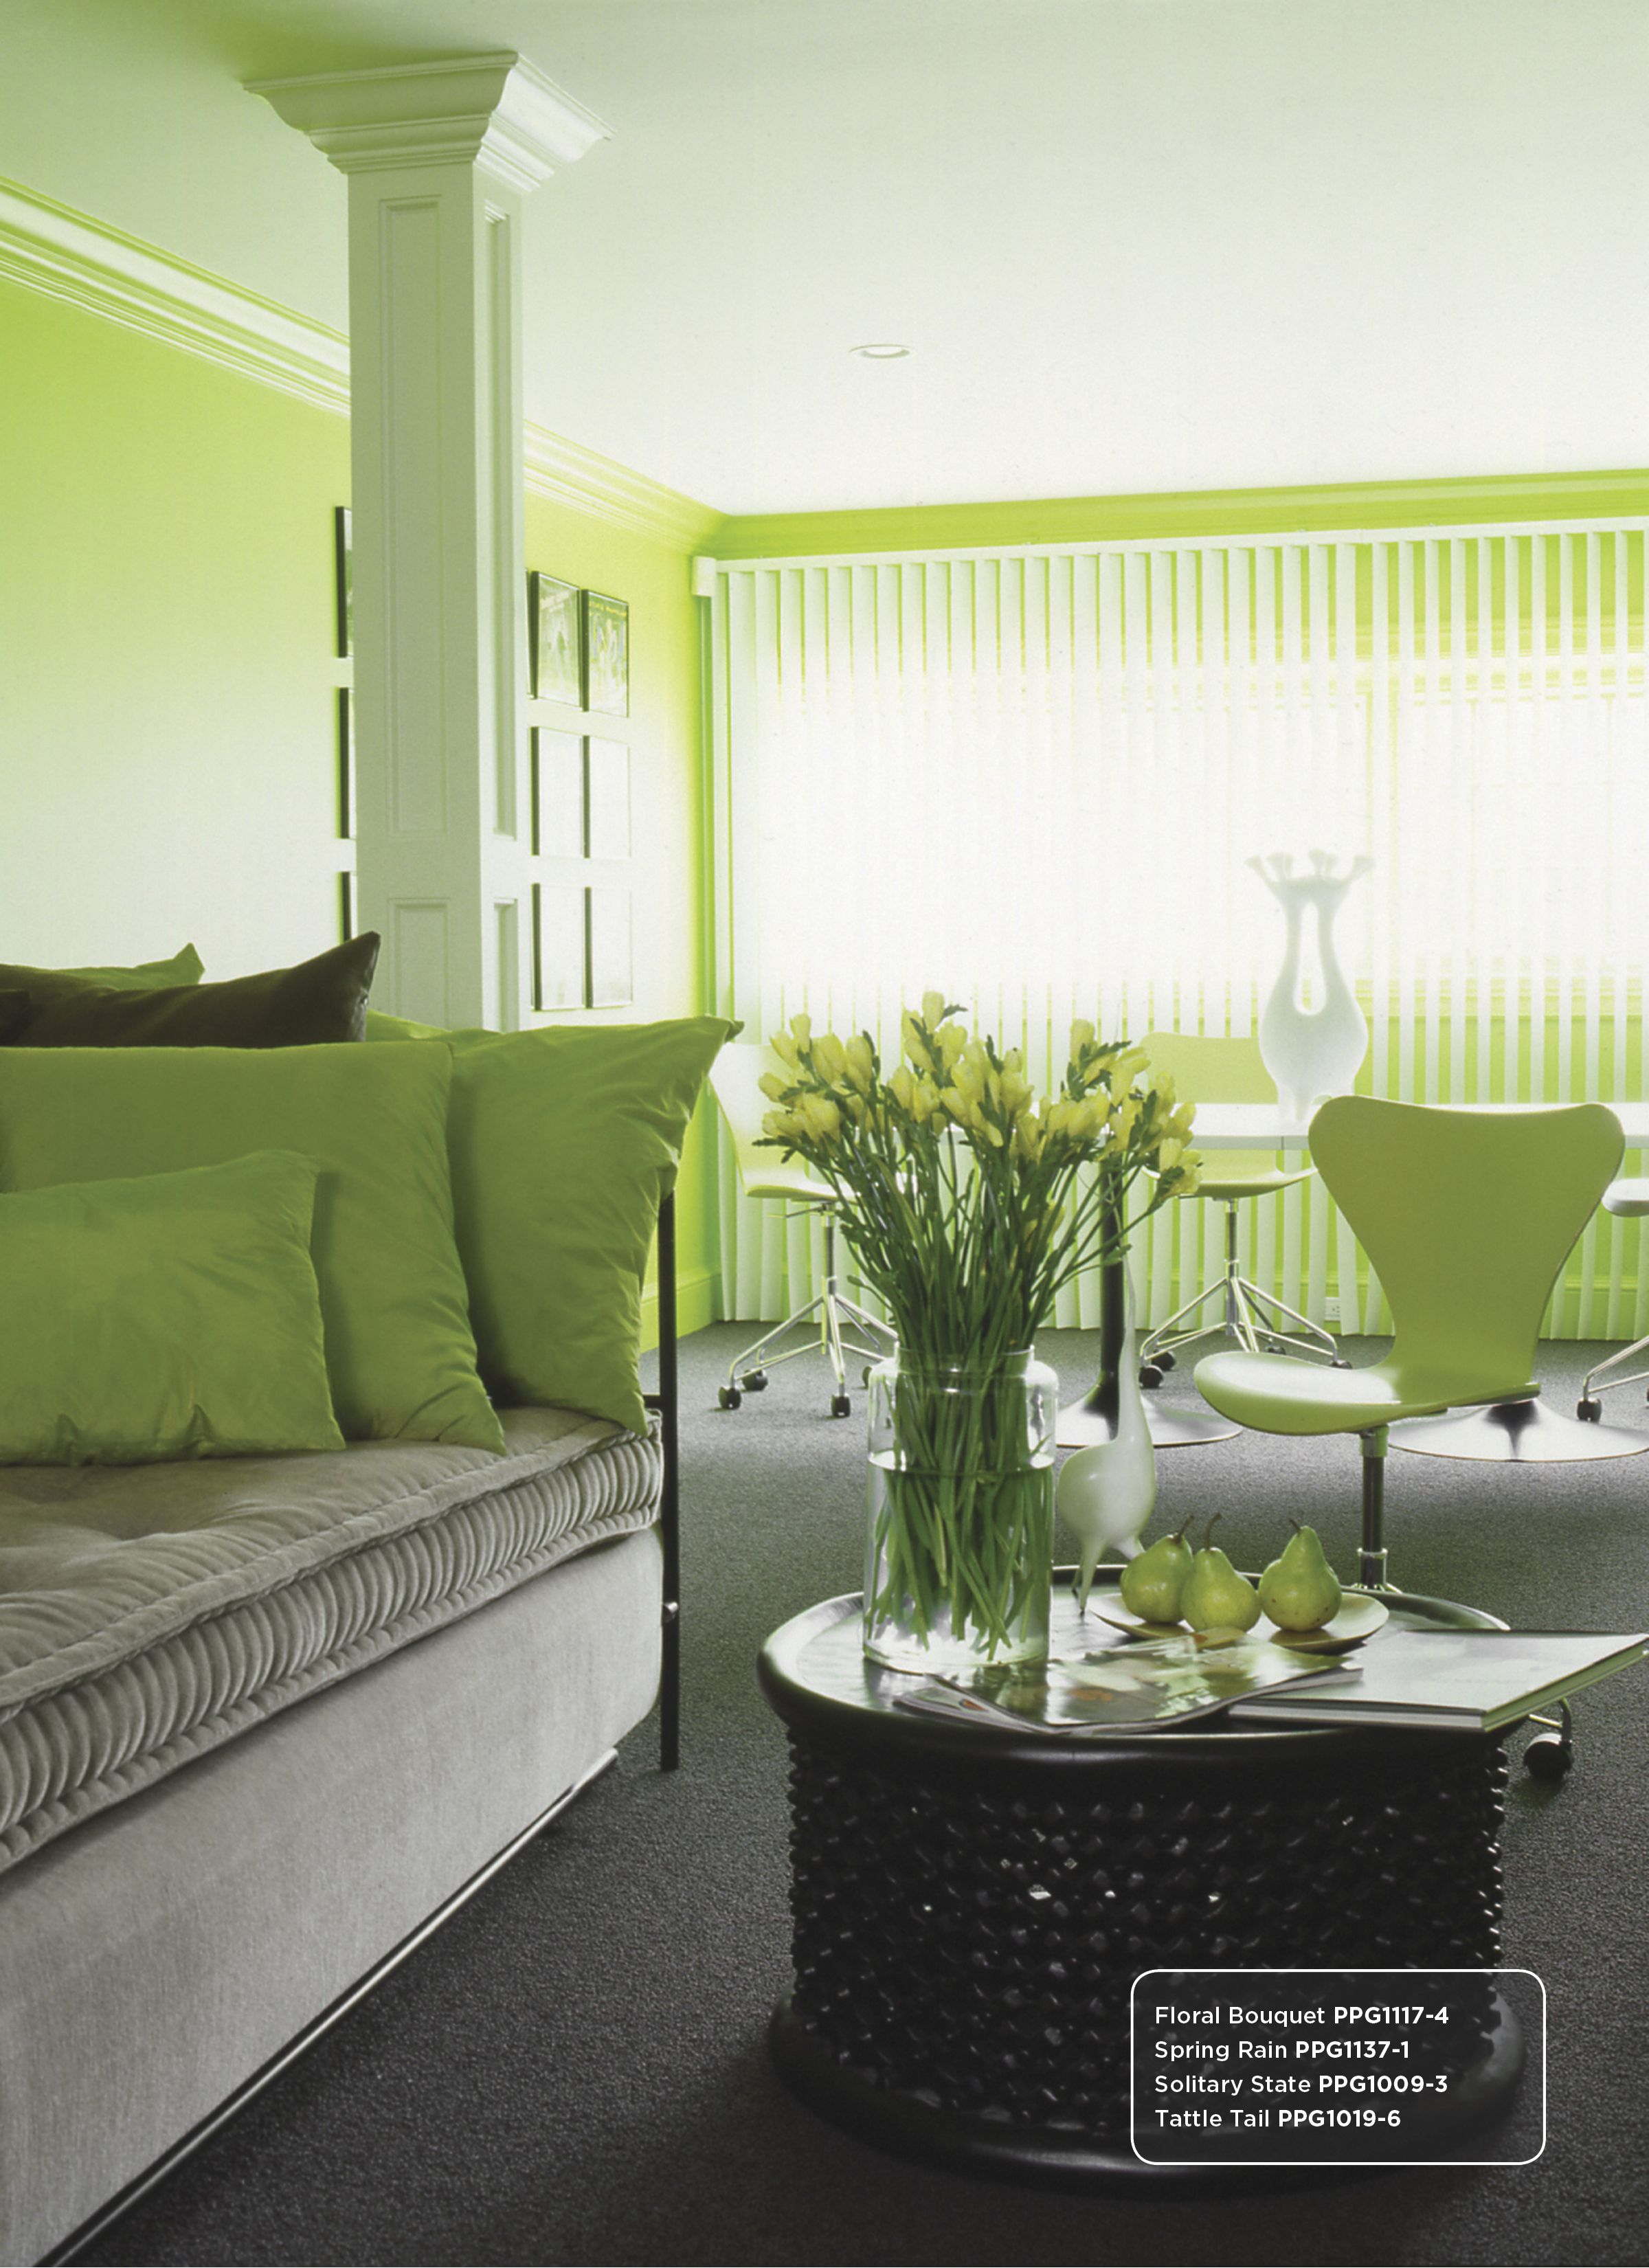 Light Green Paint For Living Room Green Wall Color Inspiration Includes Solitary State Ppg1009 3